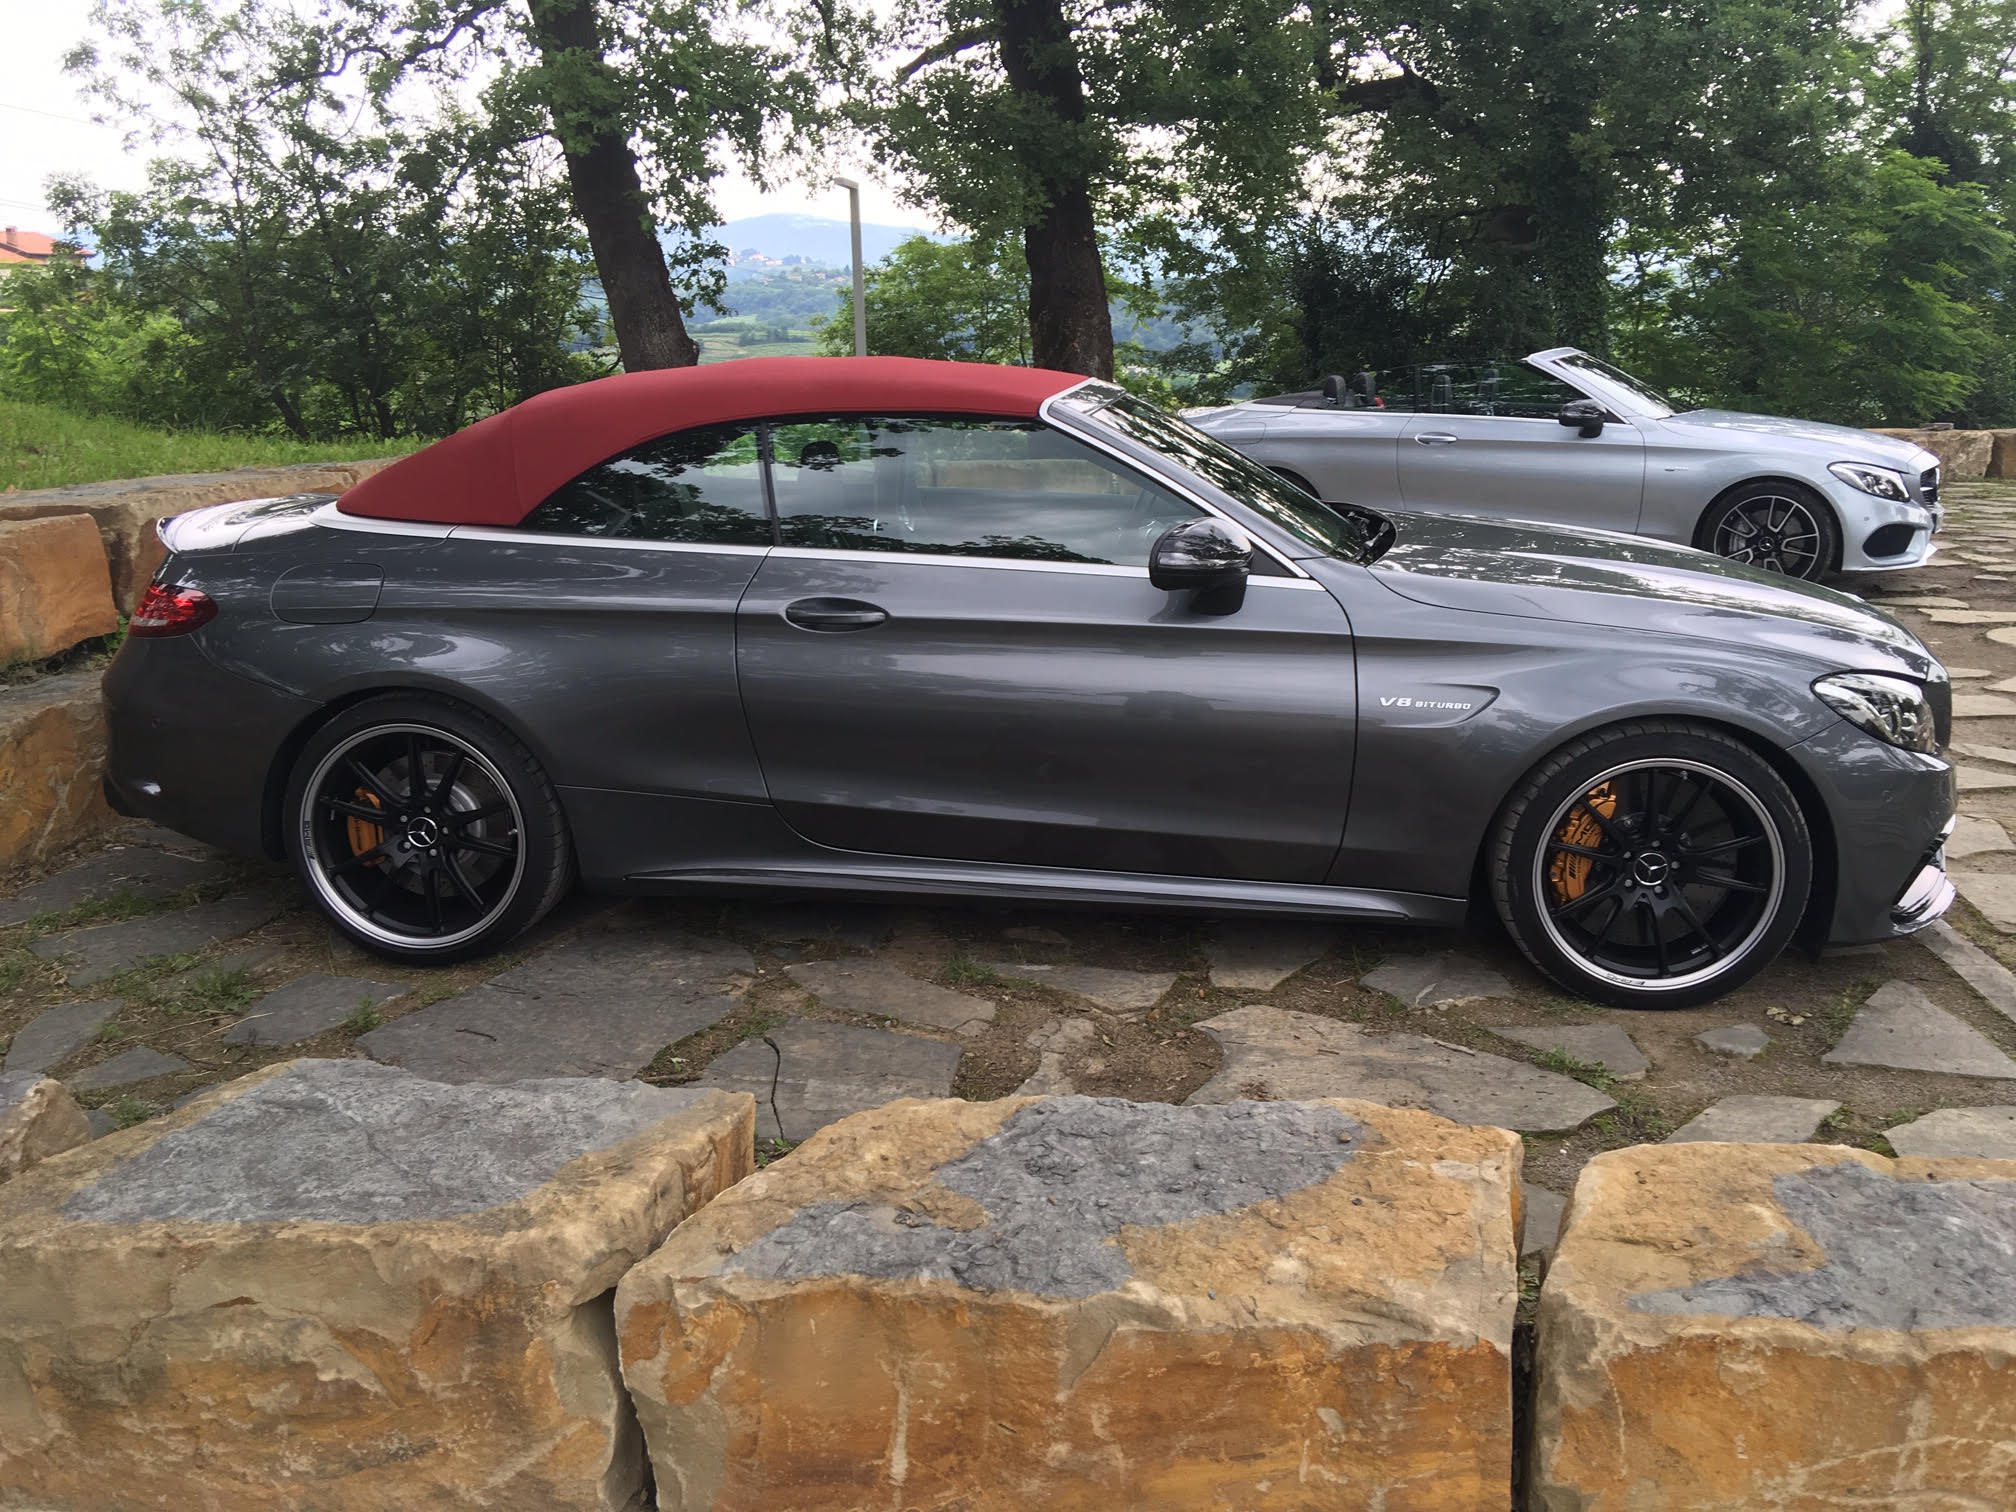 2017 mercedes amg c63 s c43 cabriolet review photos caradvice. Black Bedroom Furniture Sets. Home Design Ideas